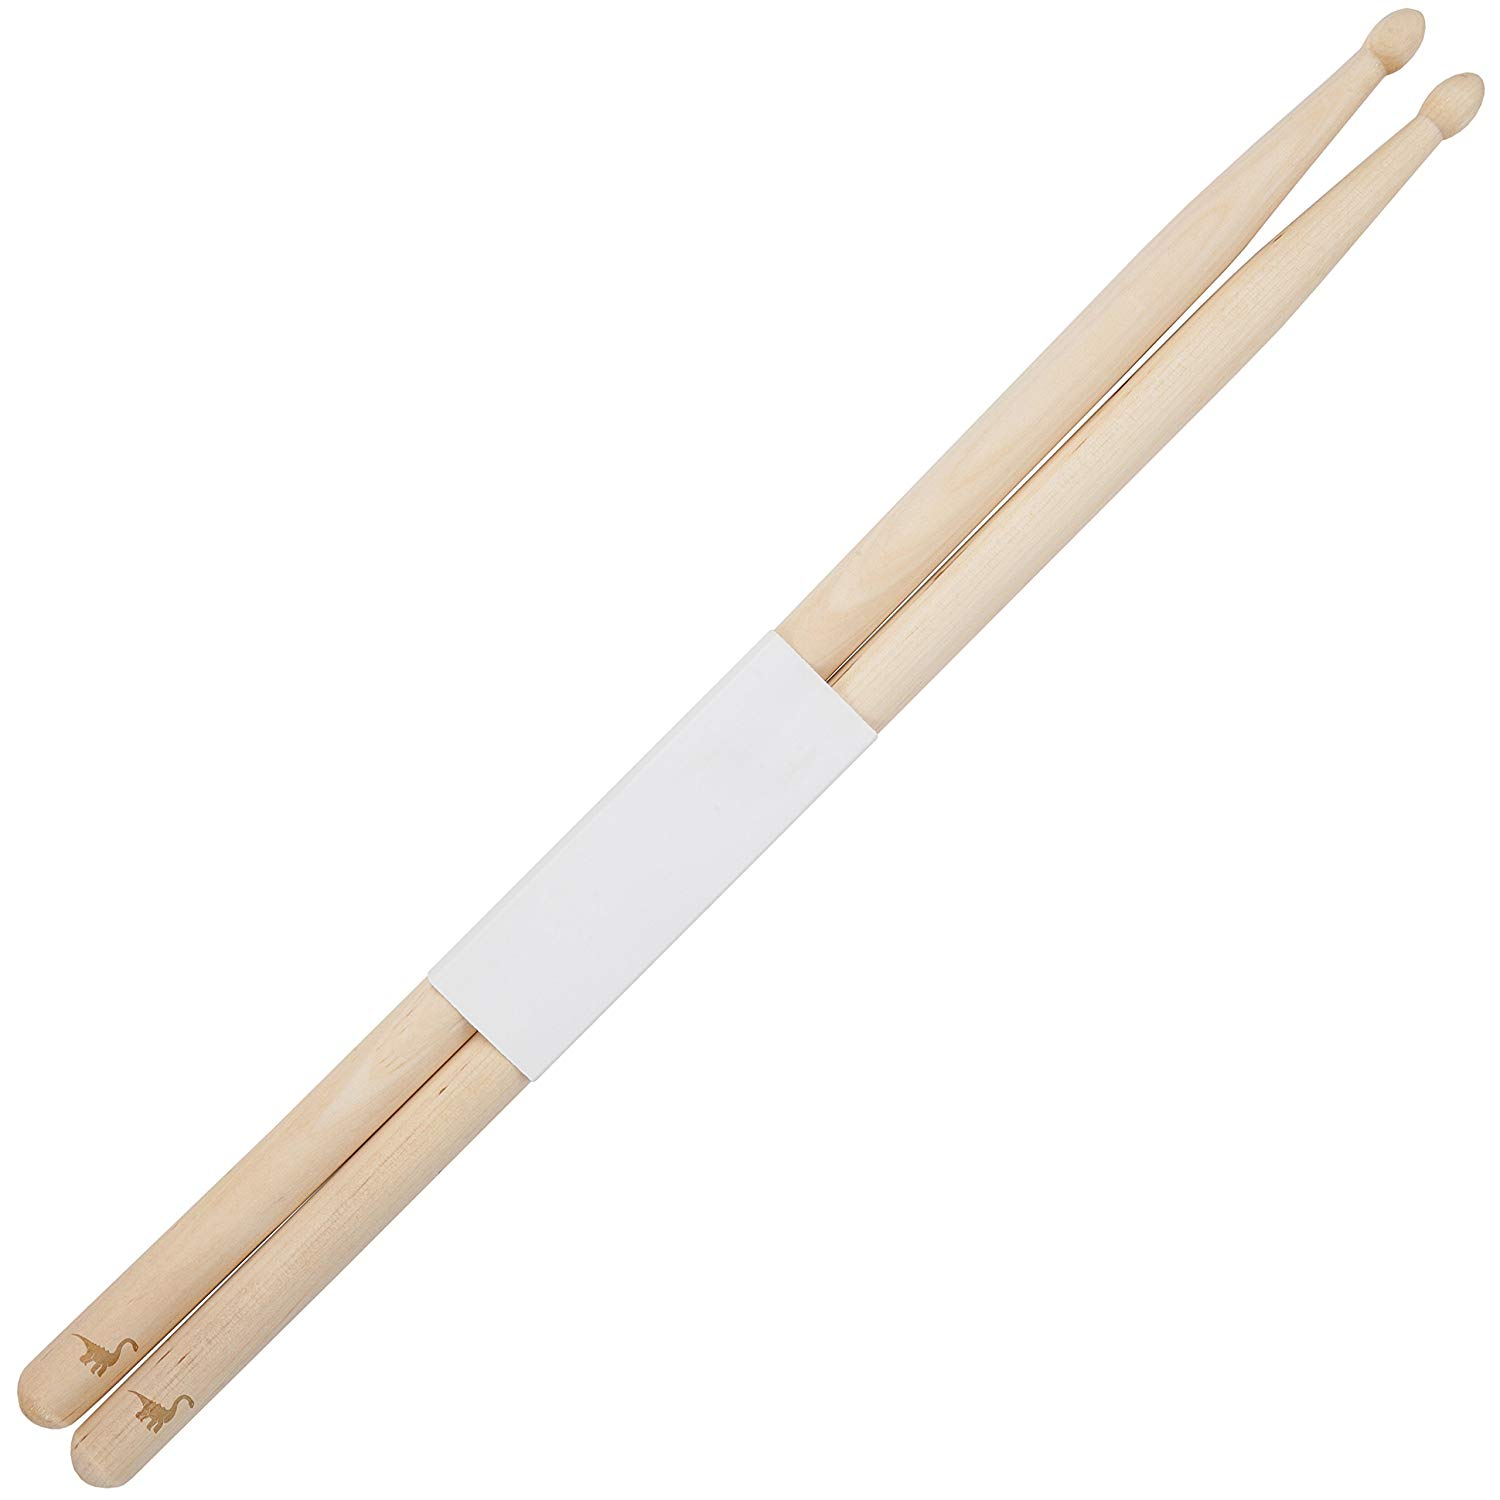 Brontosaurus 5B Maple Drumsticks With Laser Engraved Design - Durable Drumstick Set With Wooden Tip - Wood Drumsticks Gift